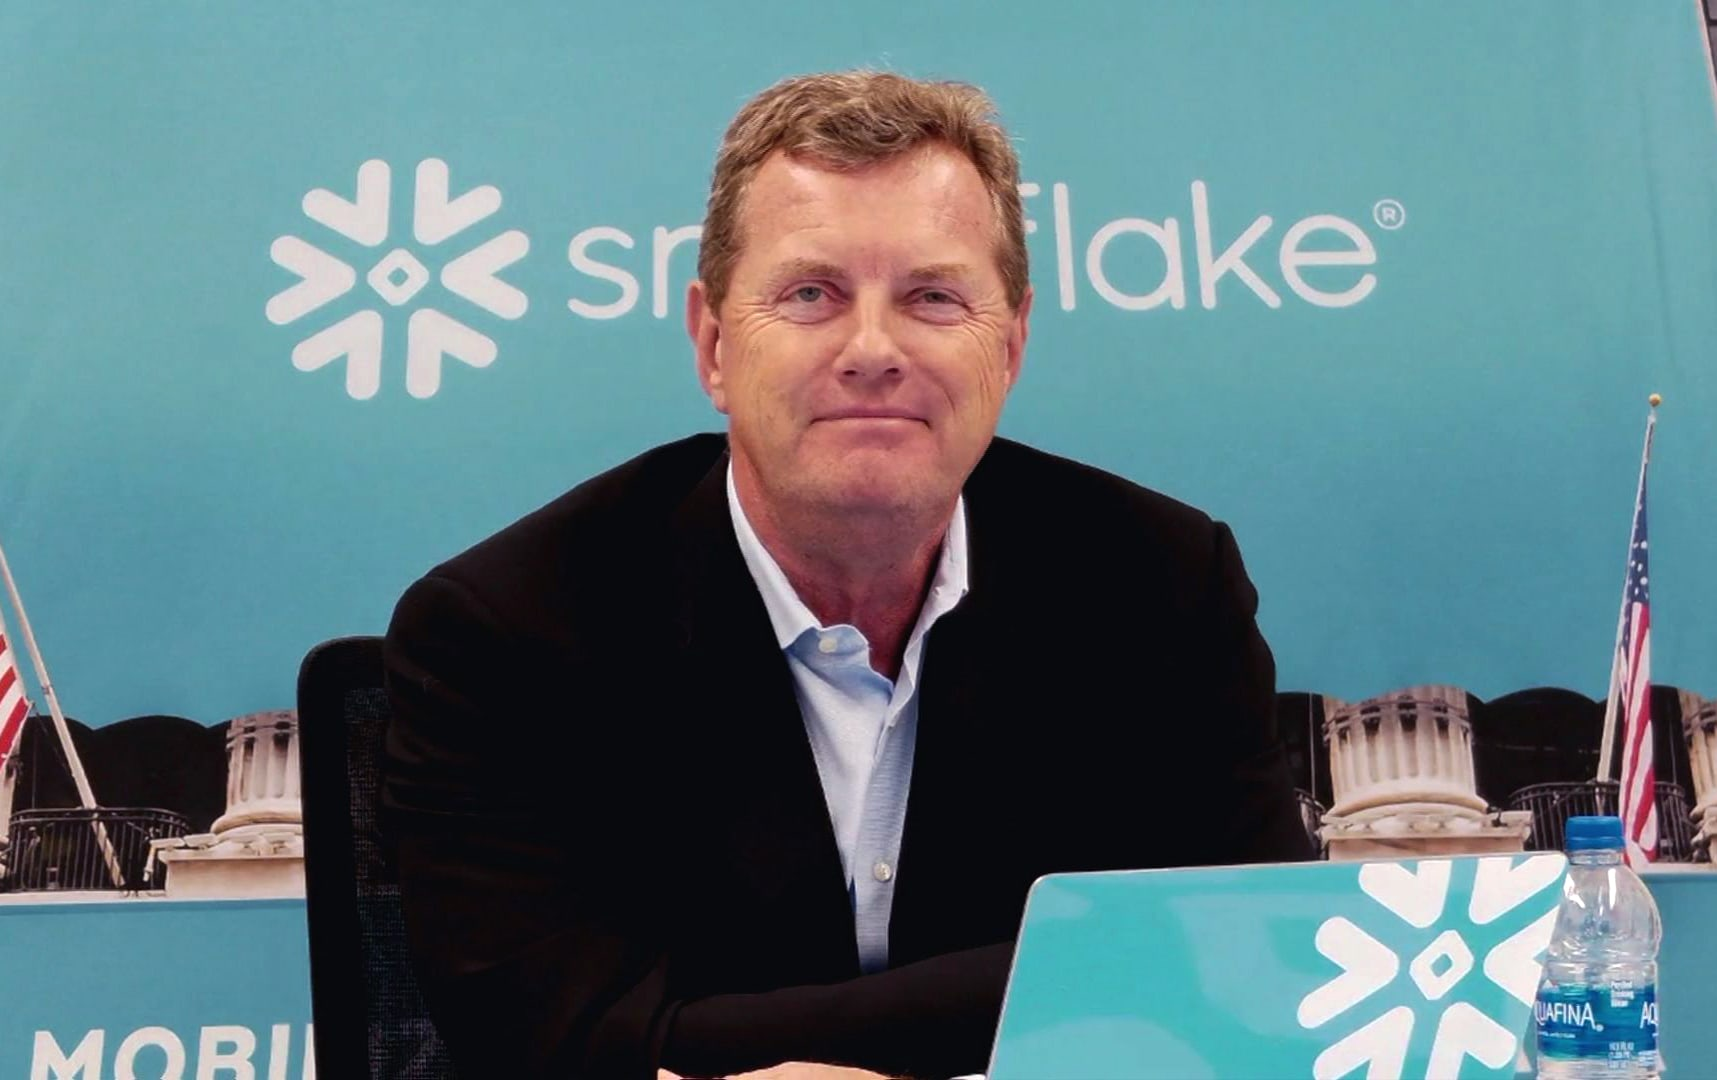 snowflake-more-than-doubles-in-market-debut,-largest-ever-software-ipo